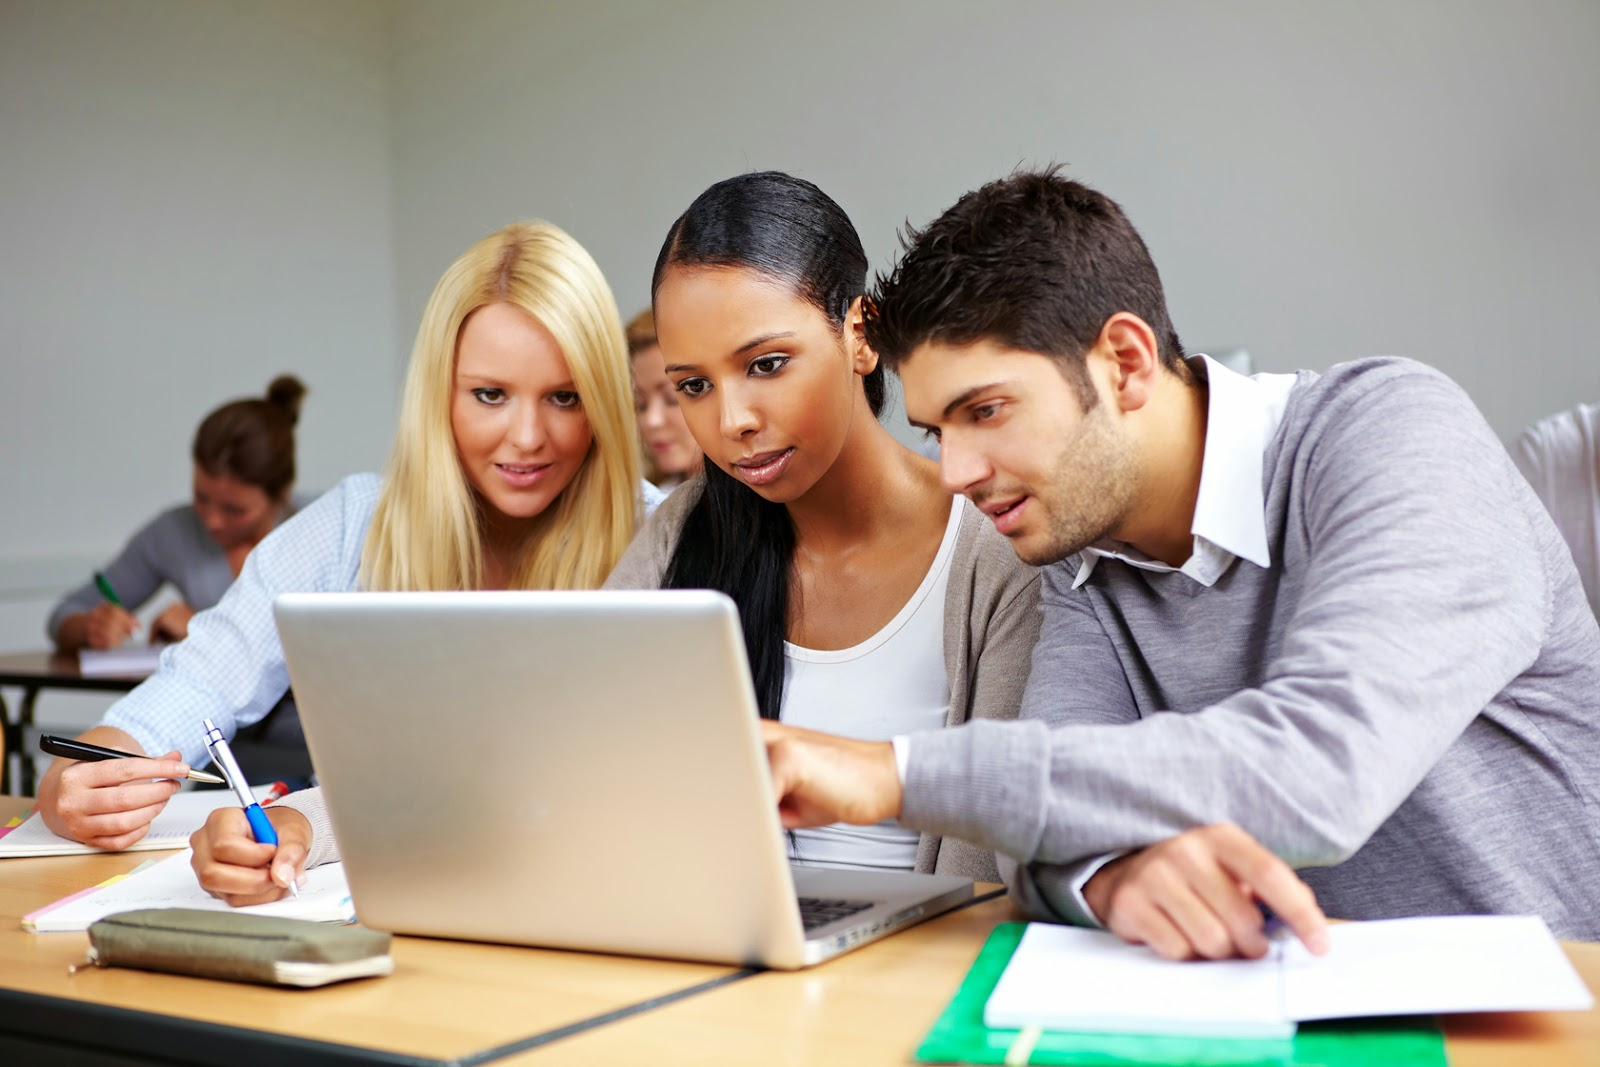 Best Place Where I Can Find & Buy a Research Paper Online